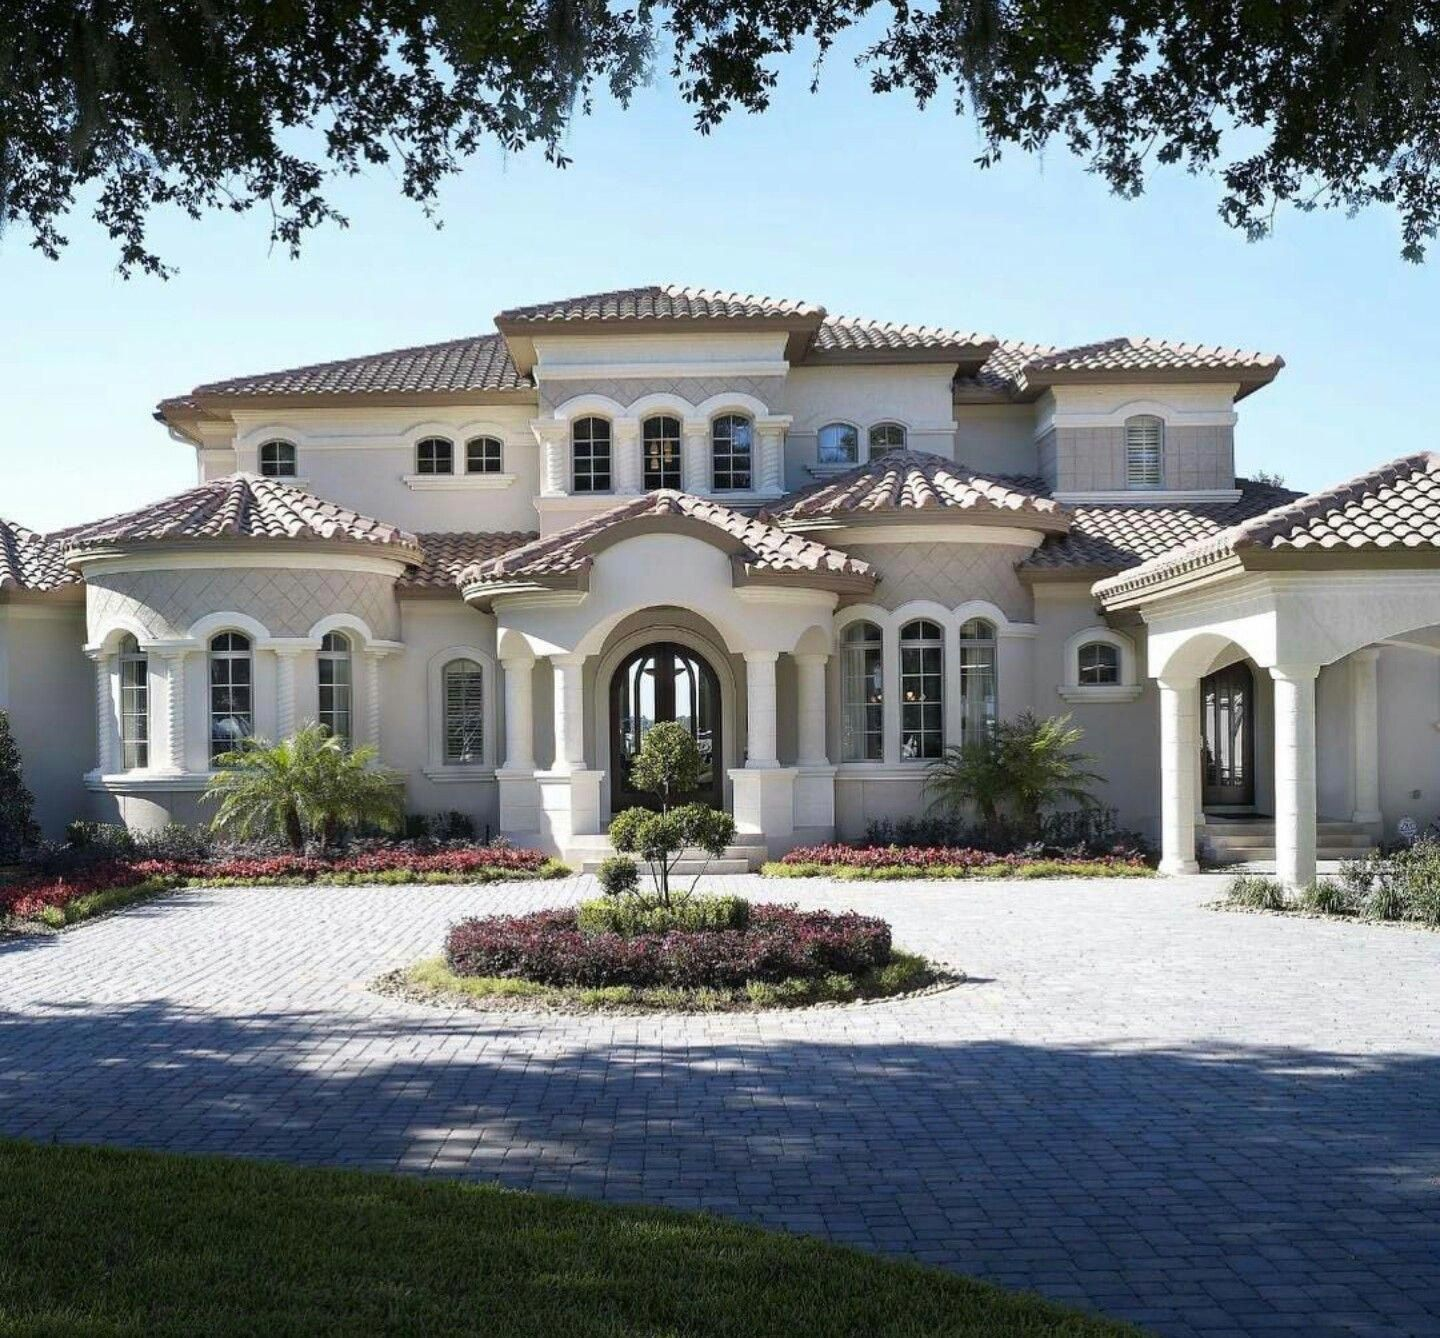 New Luxury Home Builder: Mediterranean Style Home #Tuscanstyle